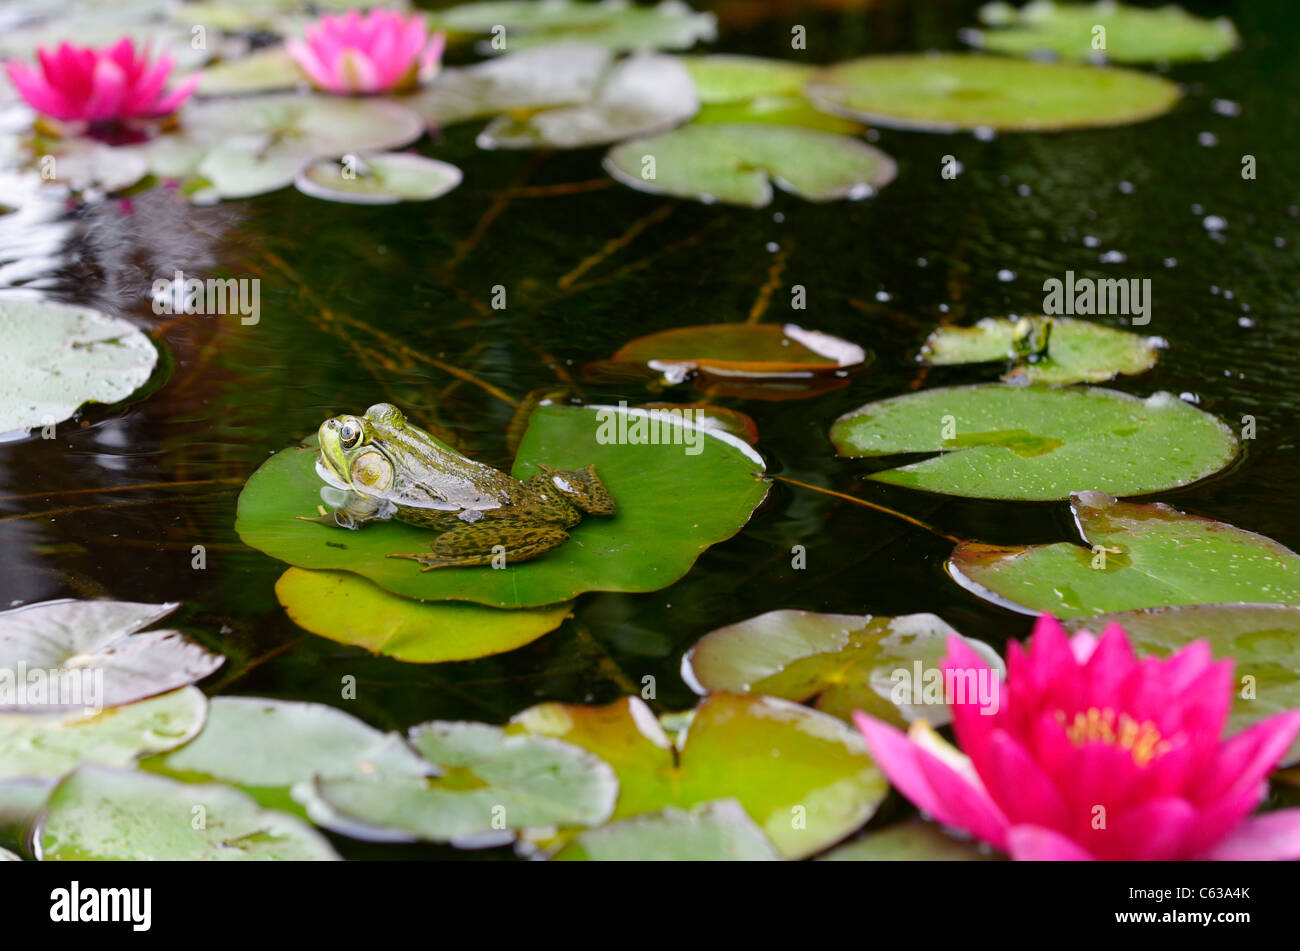 Pink flower and lily pad frog stock photos pink flower and lily green frog floating on a water lily pad leaf in a pond with pink flowers izmirmasajfo